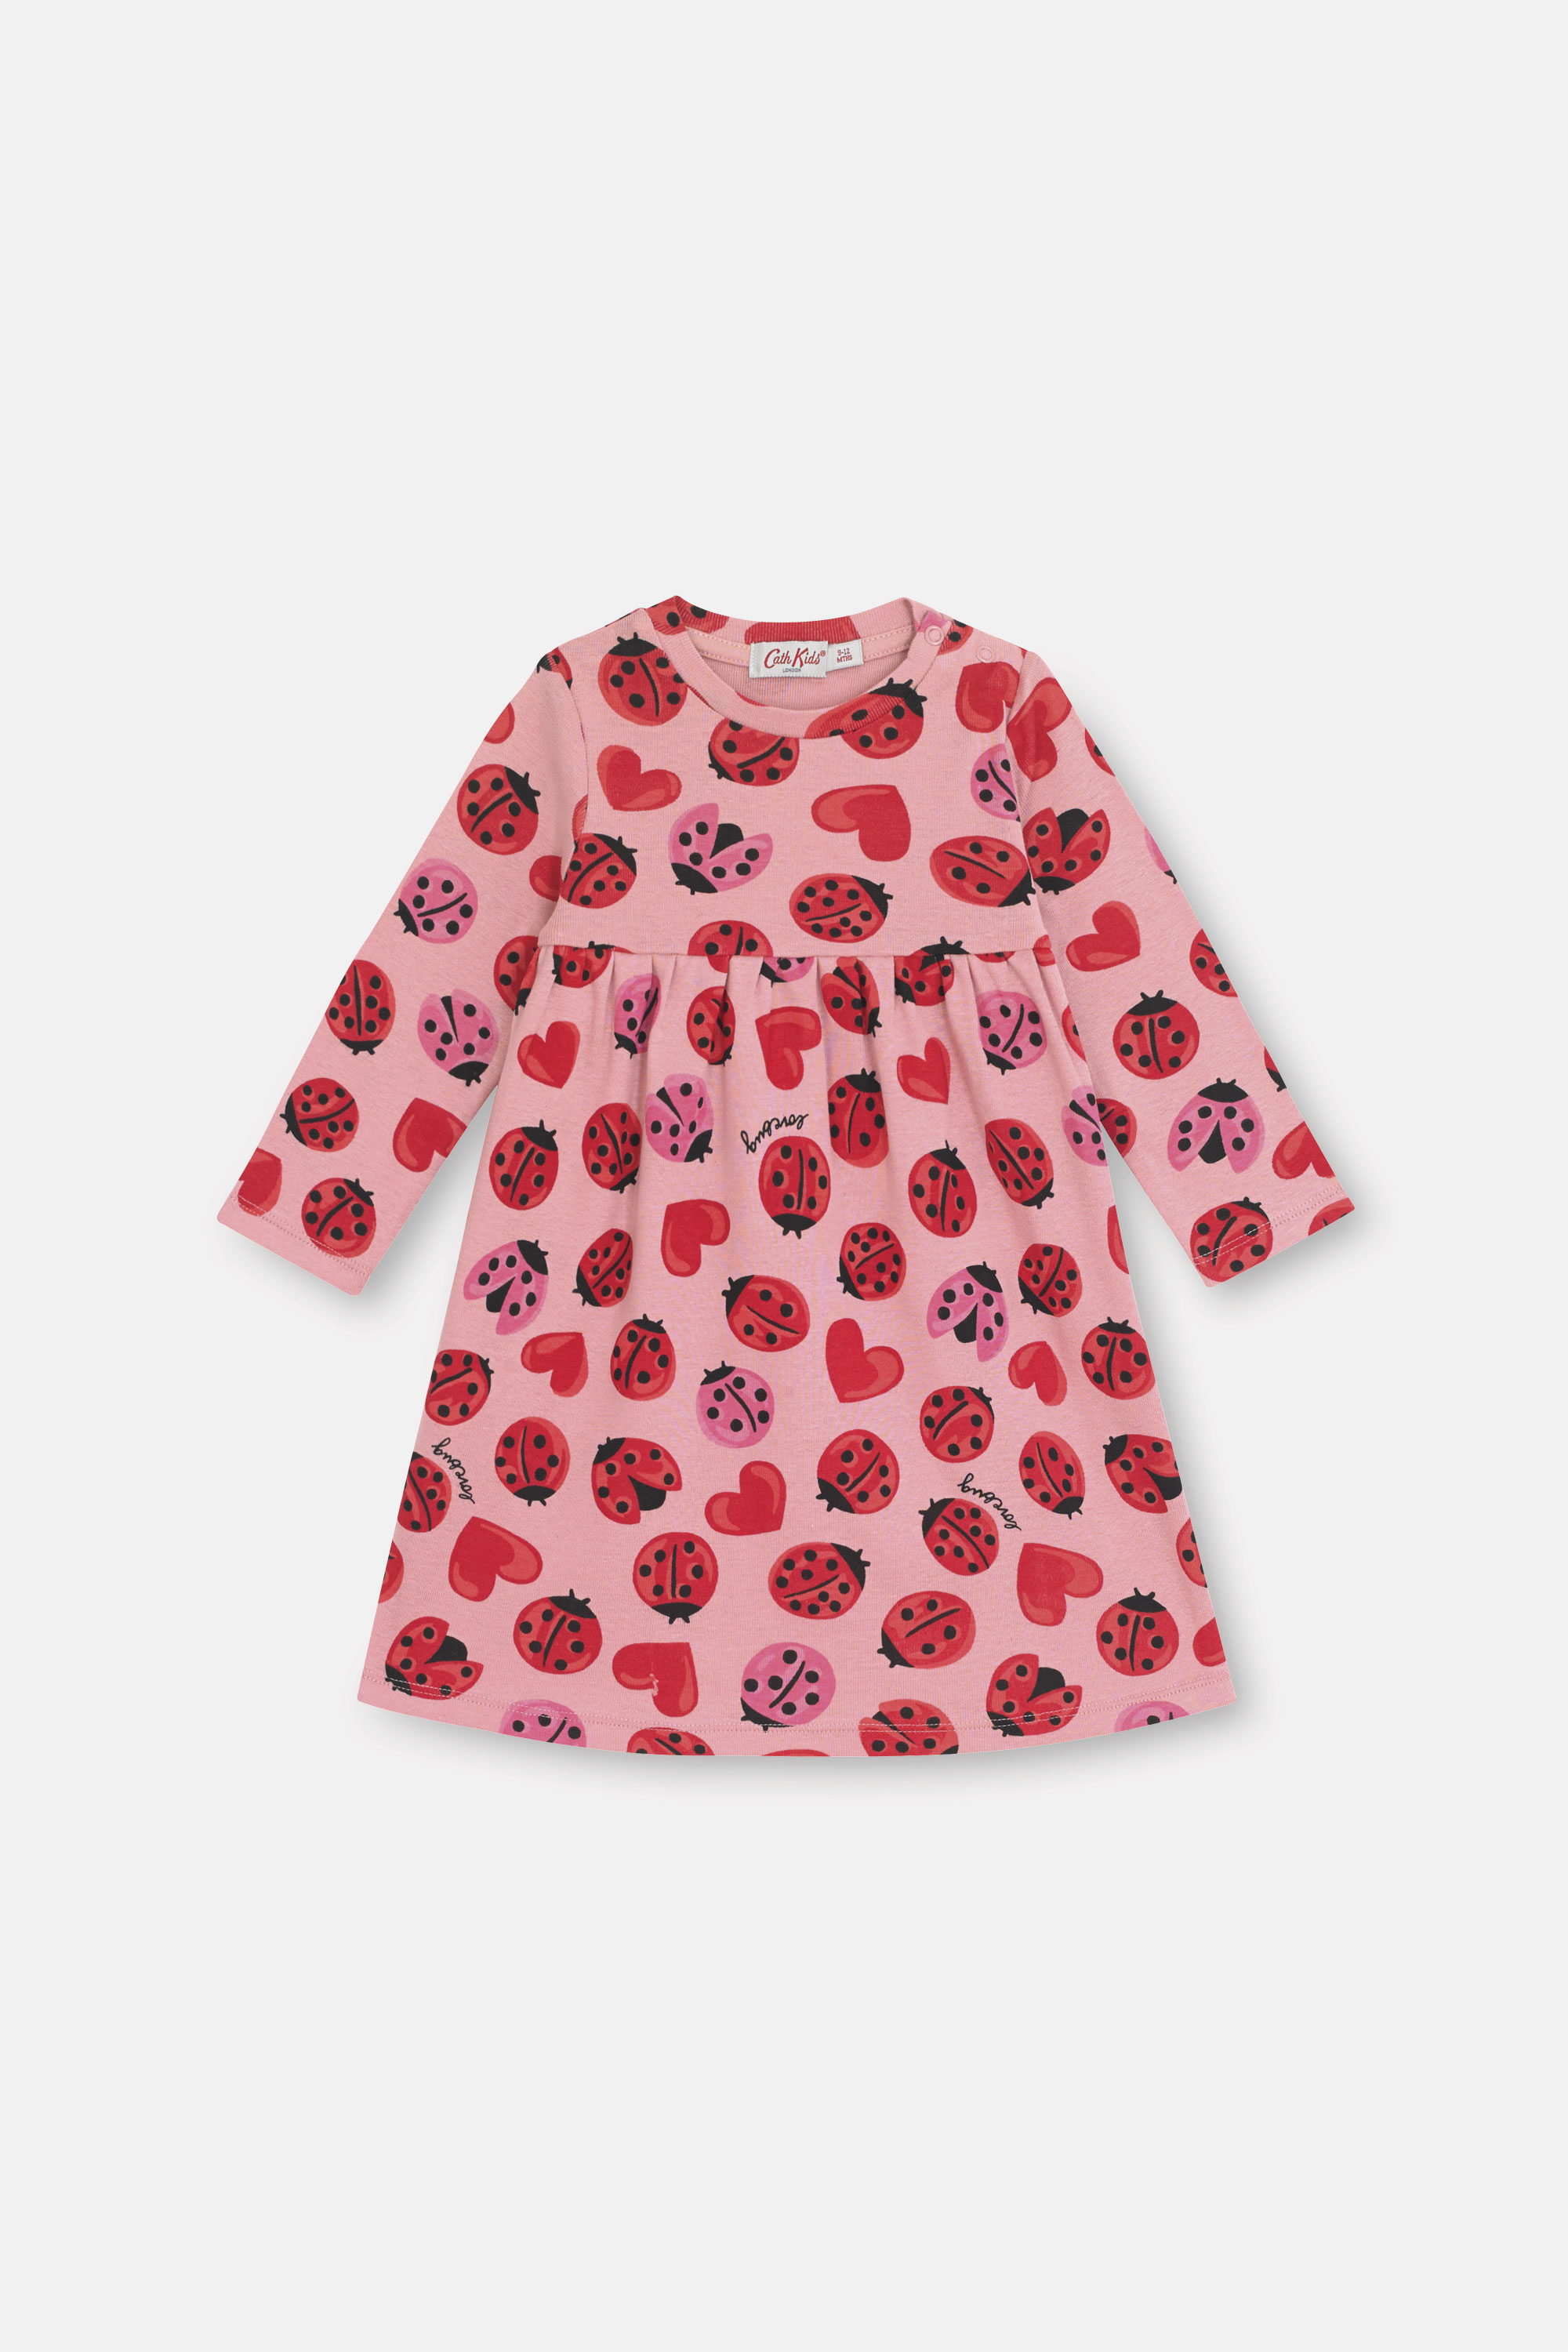 Cath Kidston Lovebugs Baby Long Sleeve Everyday Dress in Pale Rose, 12-18 Mo